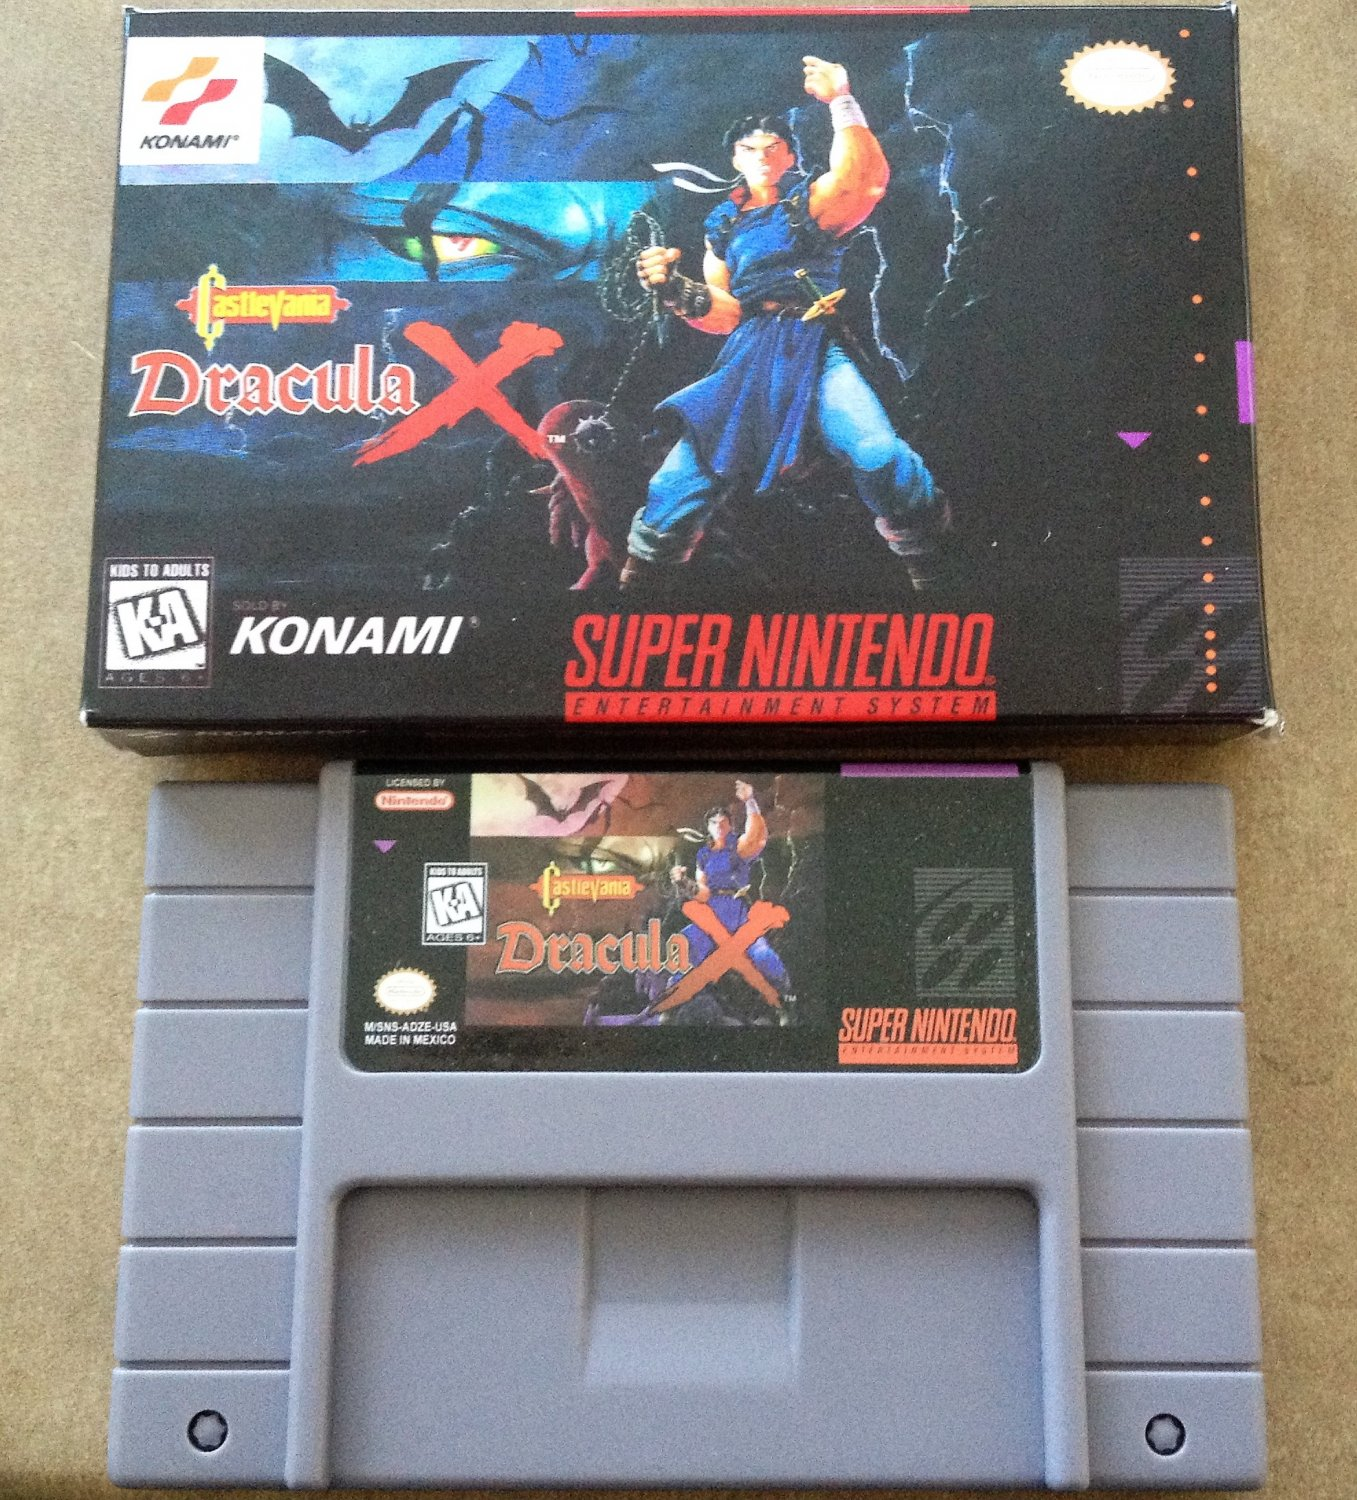 Castlevania: Dracula X (Super Nintendo, SNES) - Repro Cart w/ Custom Mini Box